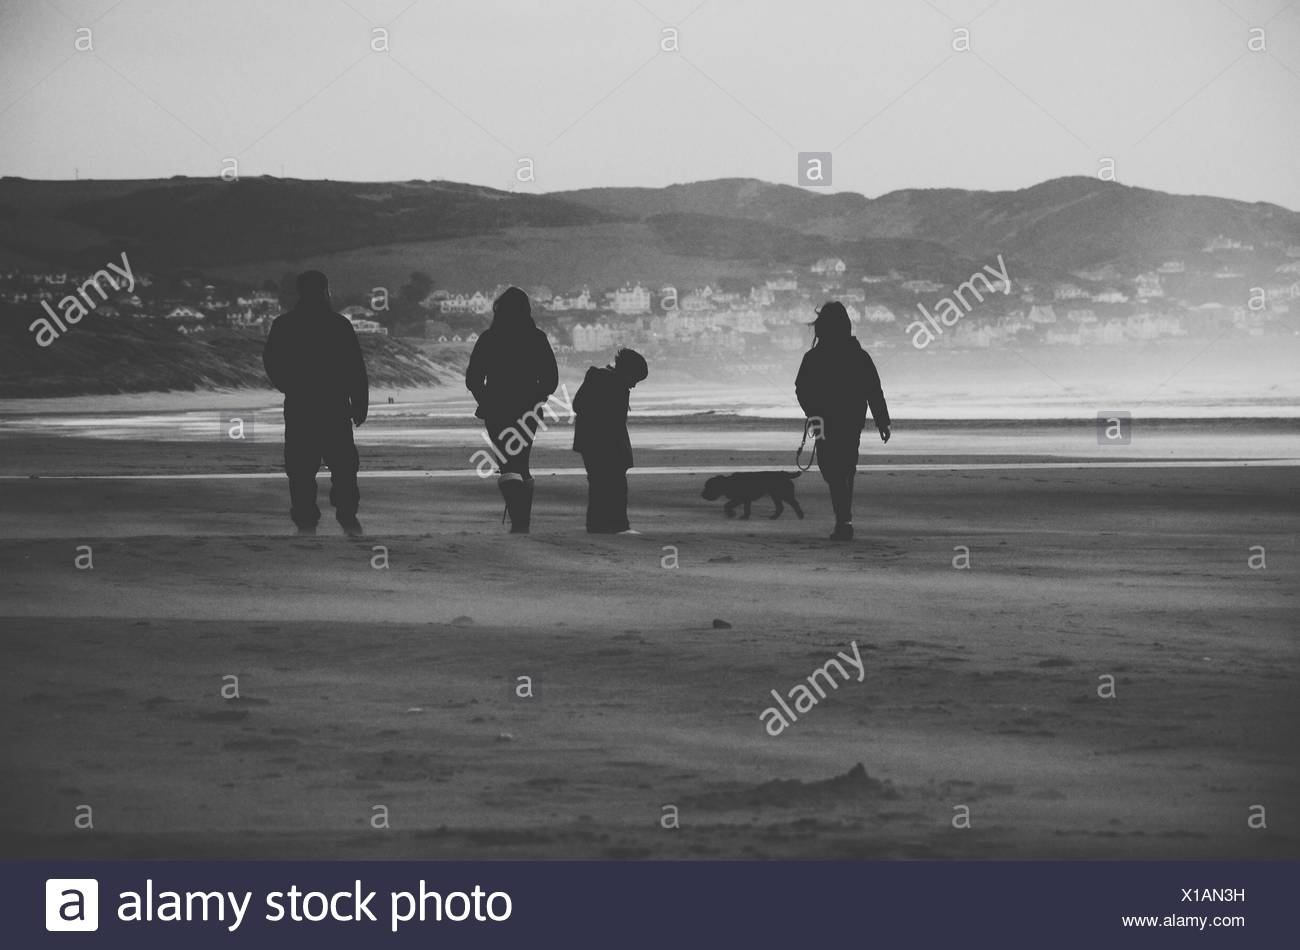 Silhouette Family With Dog Walking On Beach - Stock Image